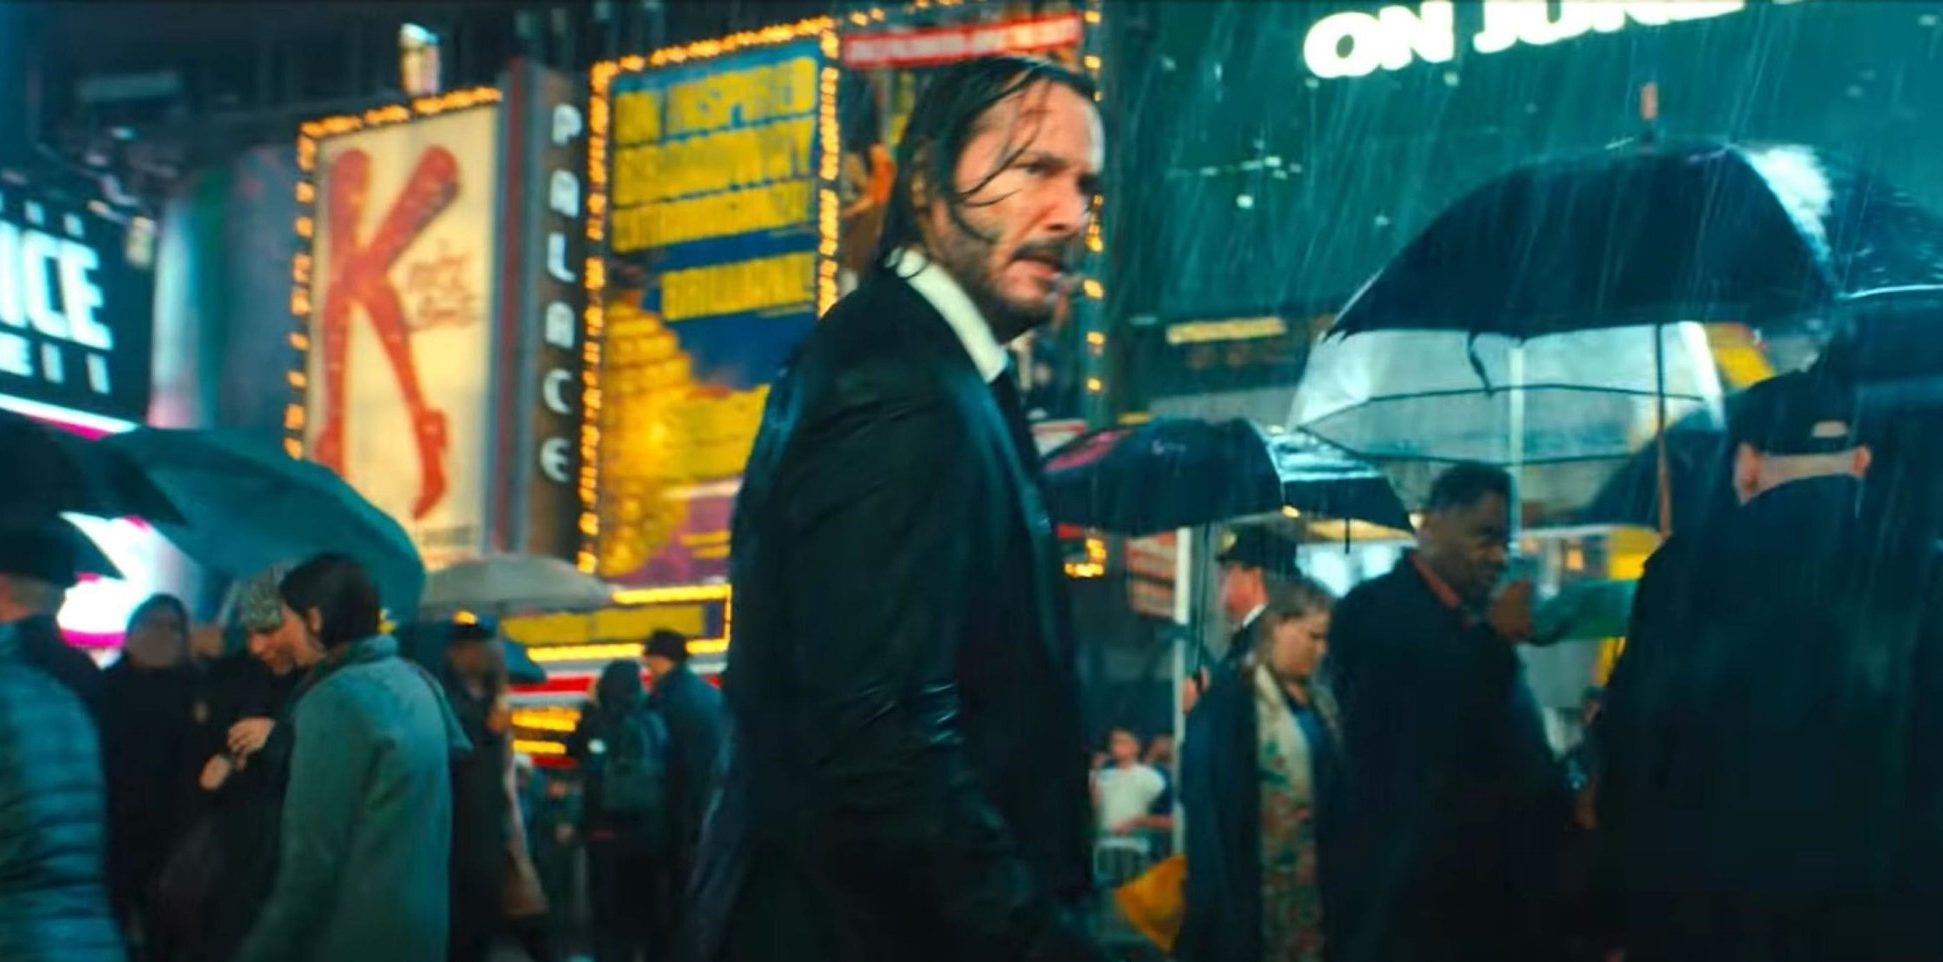 """BGUK_1459326 - ** RIGHTS: WORLDWIDE EXCEPT IN UNITED STATES ** Los Angeles, CA - First look at Keanu Reeves and Halle Berry in John Wick 3: Parabellum trailer. Keanu Reeves is back with a vengeance - with his trusty dog at his side. The official trailer for the film has been released and features the leading man running through Times Square and the gritty streets of New York. Picking up where the second film left off, John Wick has been excommunicated from the assassin organisation with a bounty on his head. As Wick is seen running through the rainy streets of NY with his trusty dog, a voiceover ominously declares: """"There???s no escape for you. The High Table wants your life."""" In the third installment of the action franchise, John returns with a $14 million price tag on his head and an army of bounty-hunting killers on his trail. After killing a member of the shadowy international assassin???s guild, the High Table, John Wick is excommunicado but the world???s most ruthless hit men and women await his every turn. Ruby Rose, Ian McShane, Laurence Fishburne and Lance Reddick will reprise their roles in the franchise while Oscar-winning actress Halle Berry also joins the cast s a character named Sofia, a fellow assassin and close friend of John's. Other stars featured in the trailer include Anjelica Huston and Game of Thrones star Jerome Flynn. John Wick 3: Parabellum opens worldwide on May 17, 2019. *BACKGRID DOES NOT CLAIM ANY COPYRIGHT OR LICENSE IN THE ATTACHED MATERIAL. ANY DOWNLOADING FEES CHARGED BY BACKGRID ARE FOR BACKGRID'S SERVICES ONLY, AND DO NOT, NOR ARE THEY INTENDED TO, CONVEY TO THE USER ANY COPYRIGHT OR LICENSE IN THE MATERIAL. BY PUBLISHING THIS MATERIAL , THE USER EXPRESSLY AGREES TO INDEMNIFY AND TO HOLD BACKGRID HARMLESS FROM ANY CLAIMS, DEMANDS, OR CAUSES OF ACTION ARISING OUT OF OR CONNECTED IN ANY WAY WITH USER'S PUBLICATION OF THE MATERIAL* Pictured: Keanu Reeves BACKGRID UK 17 JANUARY 2019 BYLINE MUST READ: Lionsgate / BACKGRID UK: +44 208 34"""